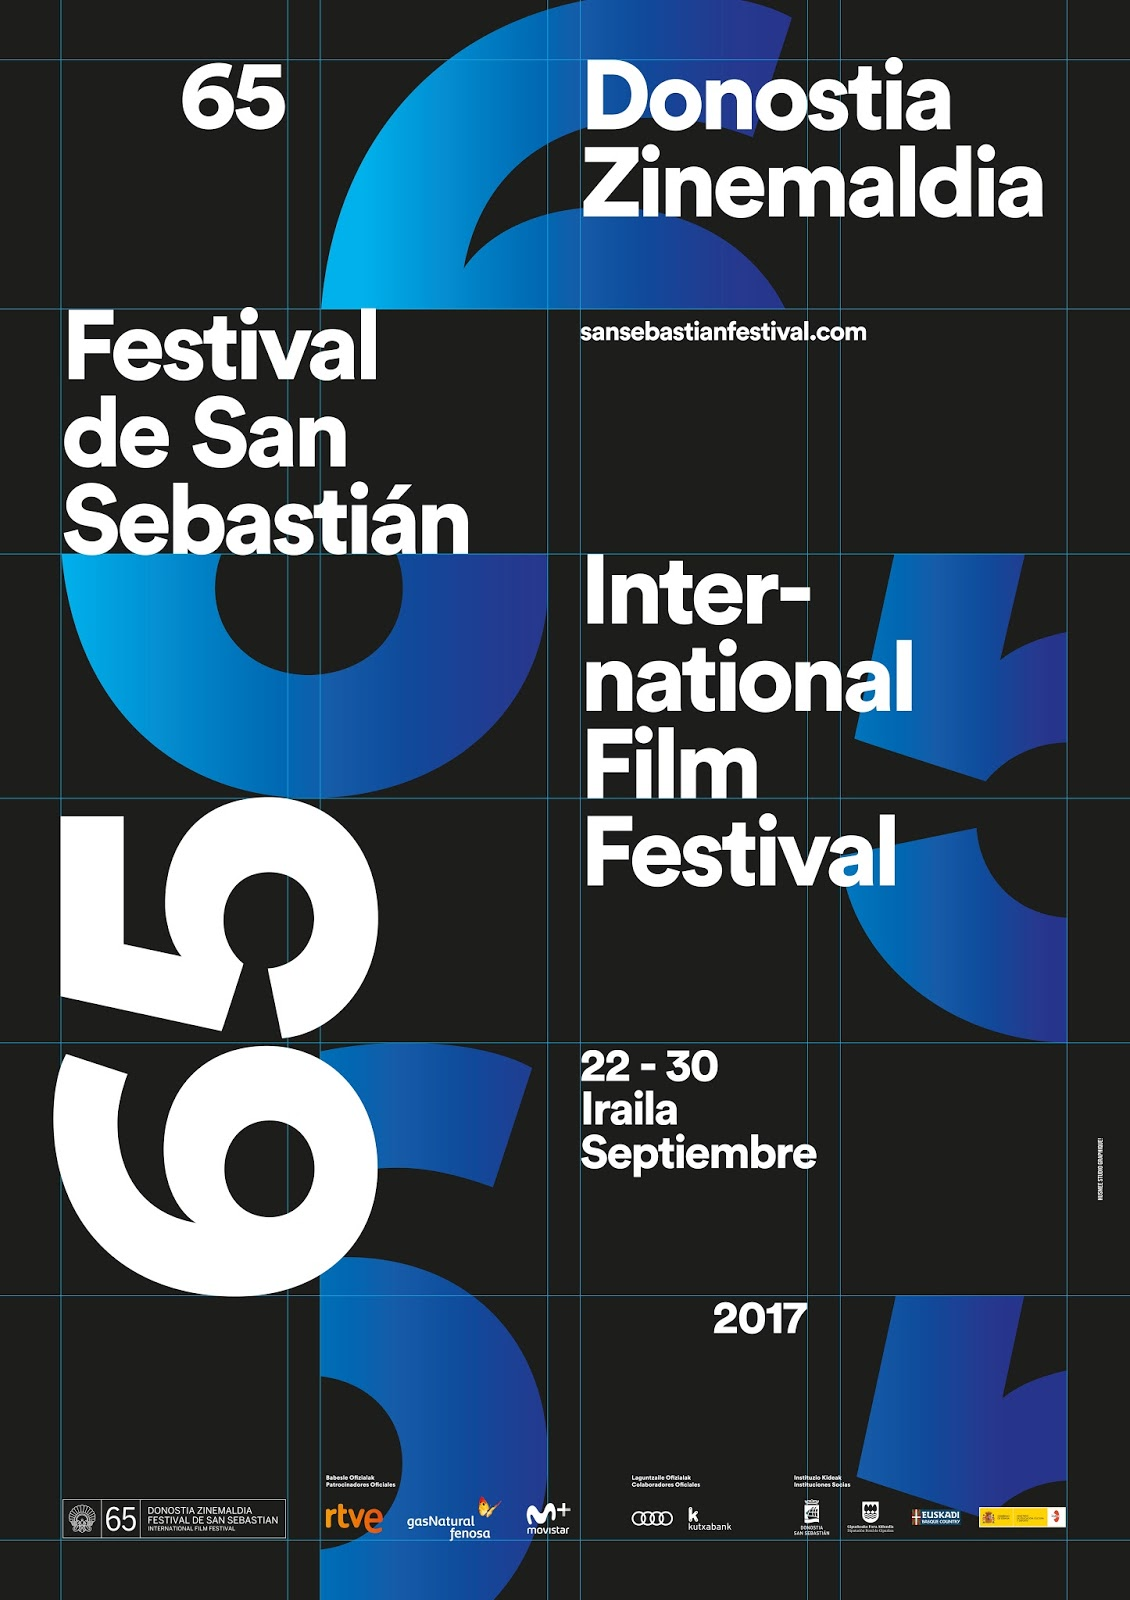 8fa5e8656e14 San Sebastian is an A-List film festival in Spain, it is one of the oldest  of most anticipated.